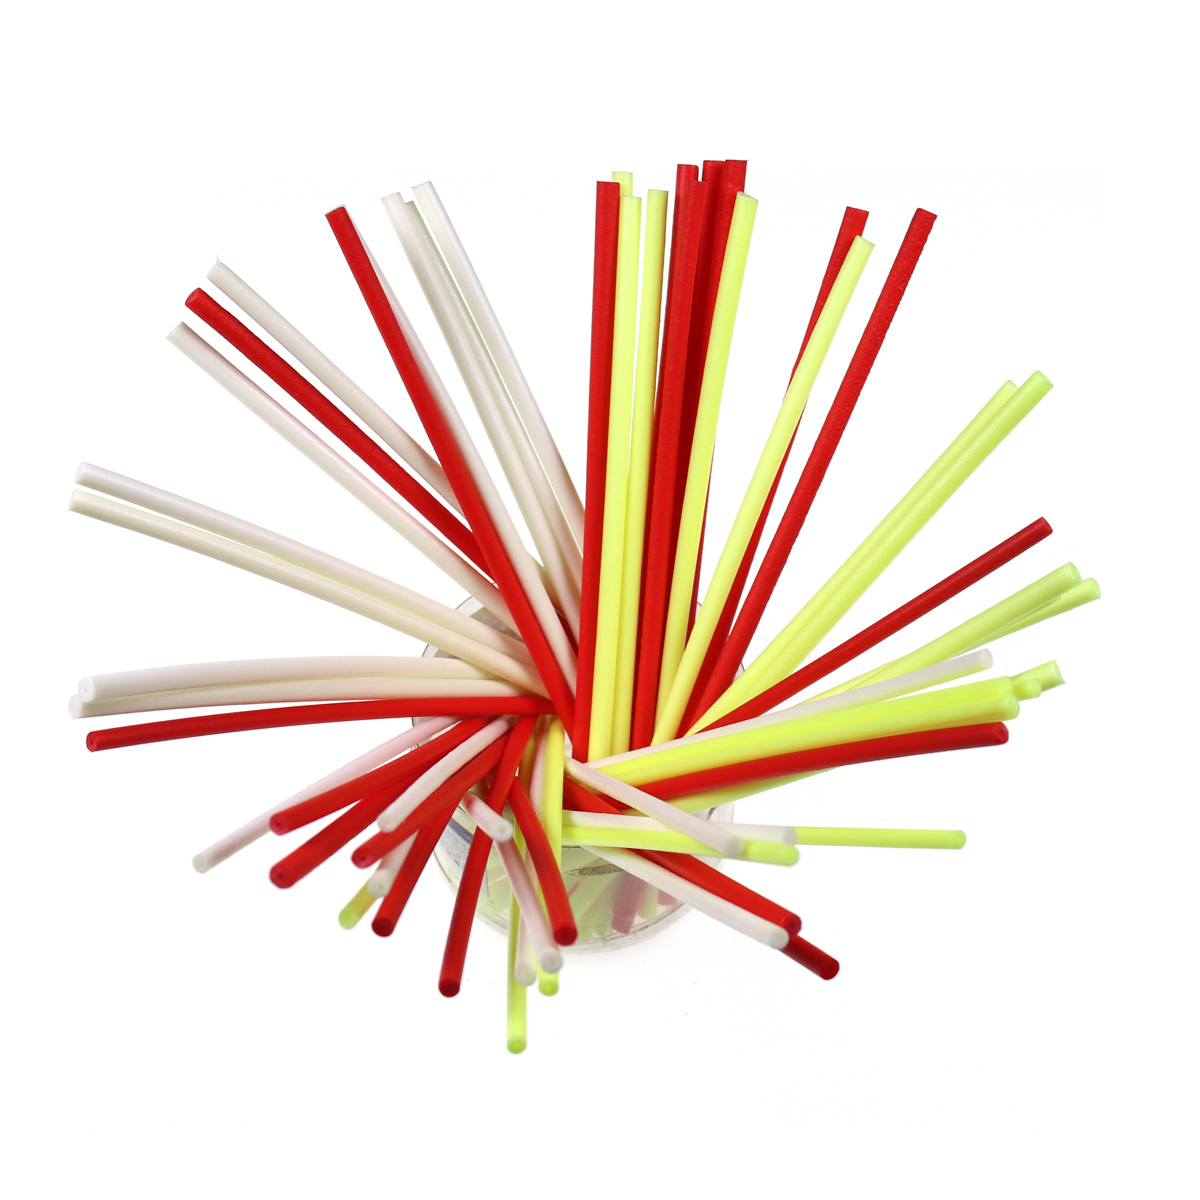 10PCS/Pack DIY Fishing Float, Float Stick, Floam Float Rigging Tube Material High Density Cylinder Foam With Center Hole S M L